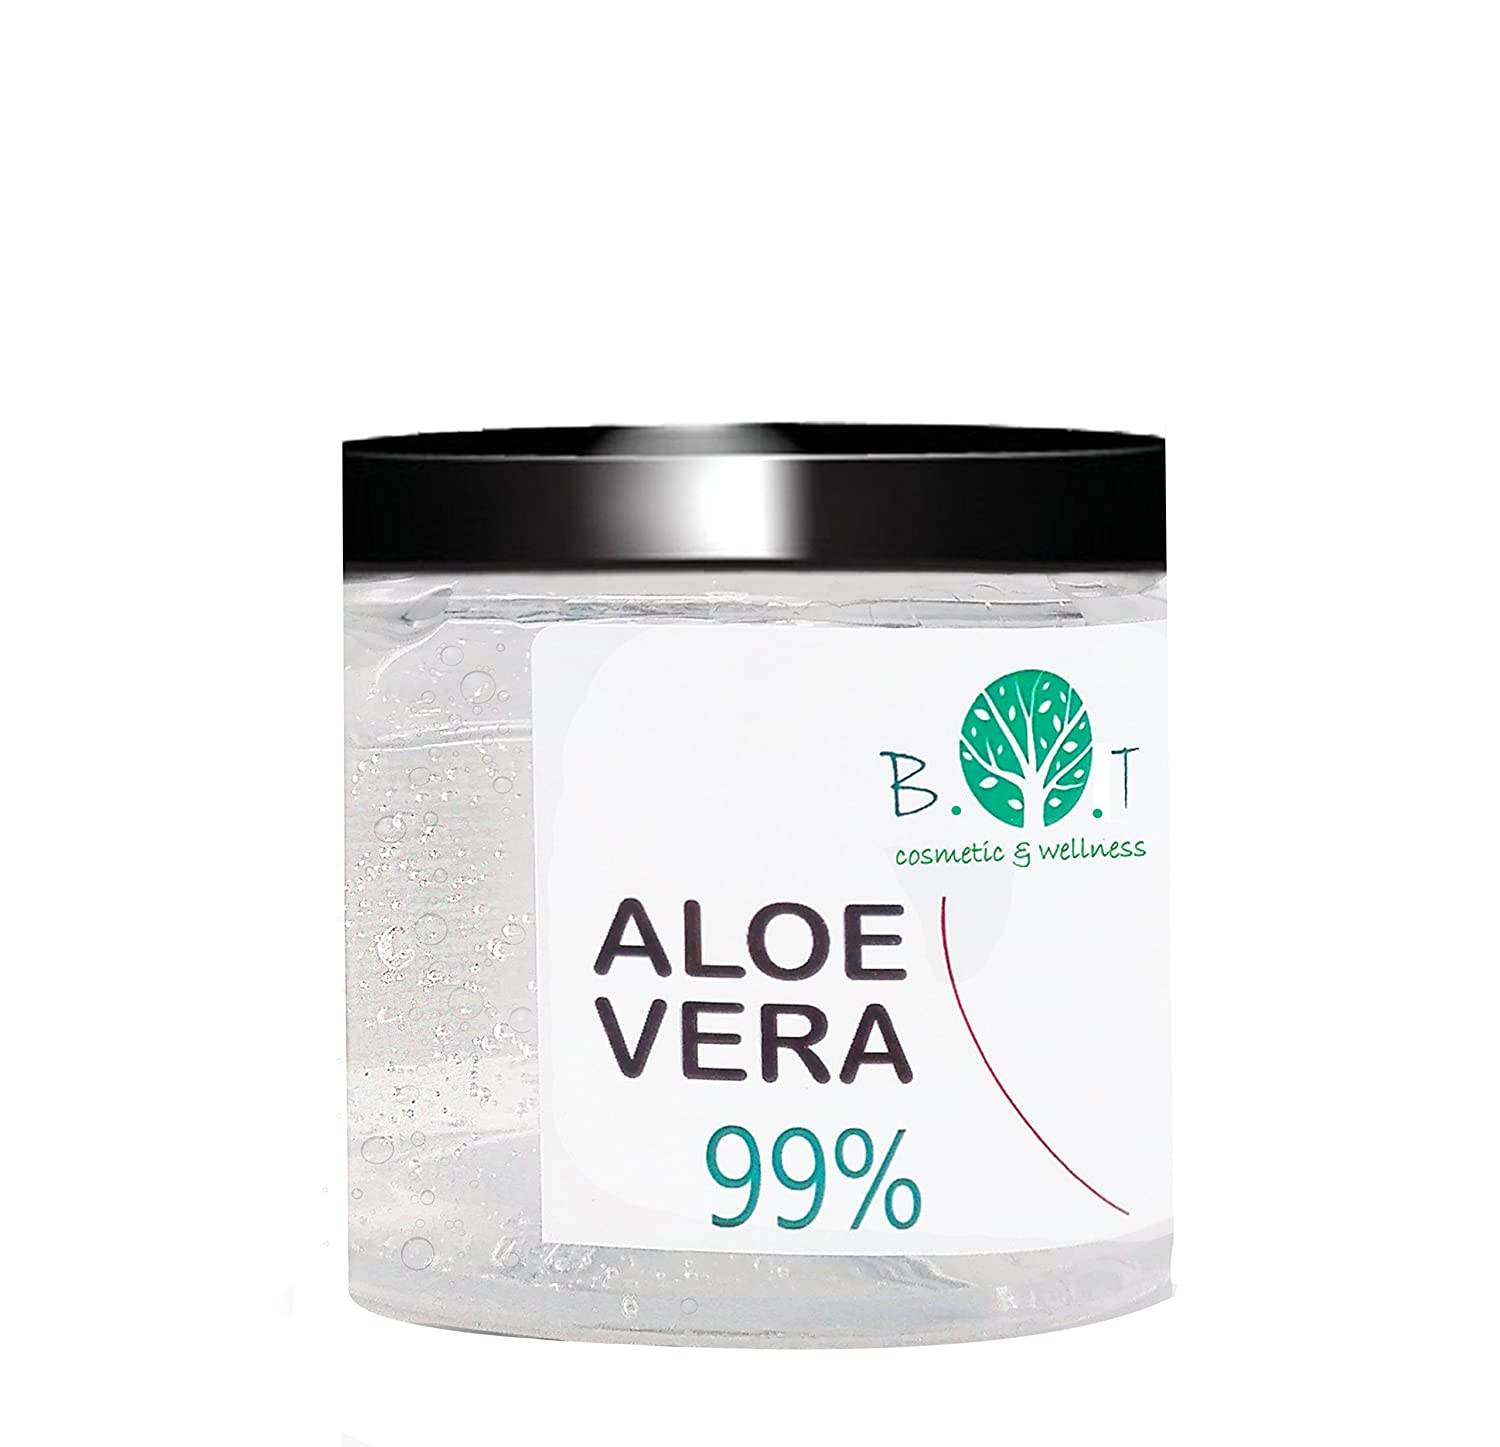 GEL ALOE VERA 99% 200 ml Made in France